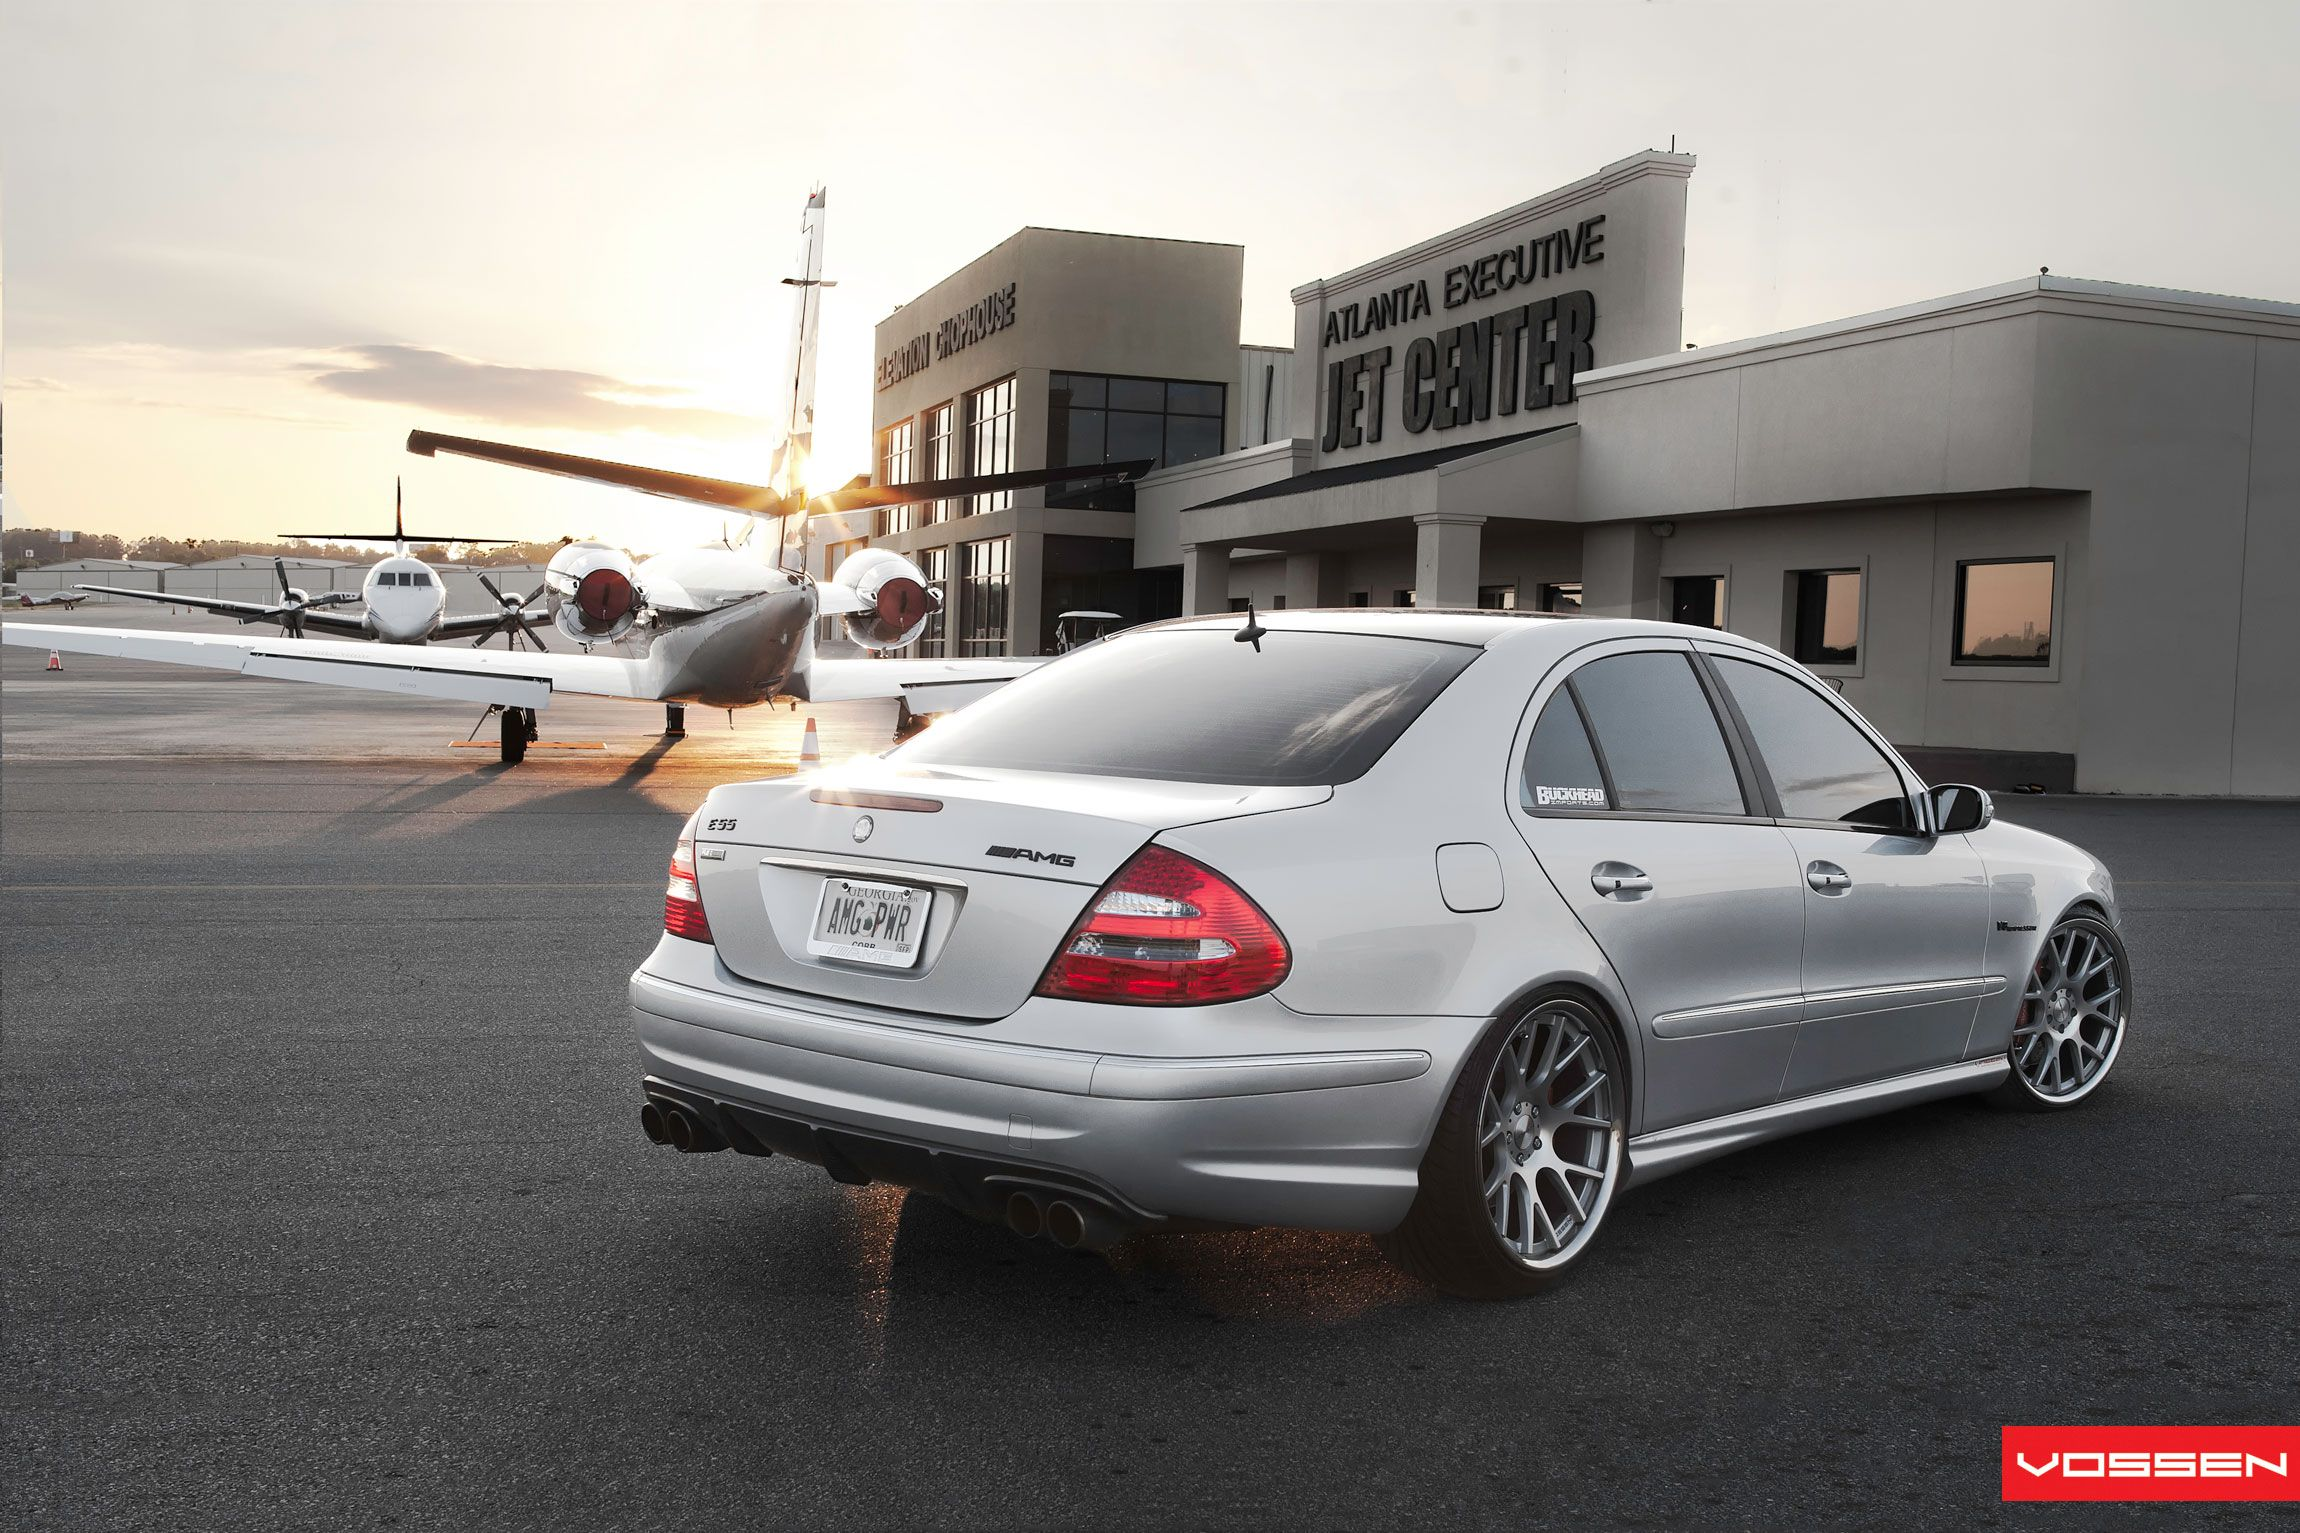 2009 mercedes e class amg lowered on 20s preview mercedes 2009 mercedes e class amg lowered on 20s preview sciox Gallery